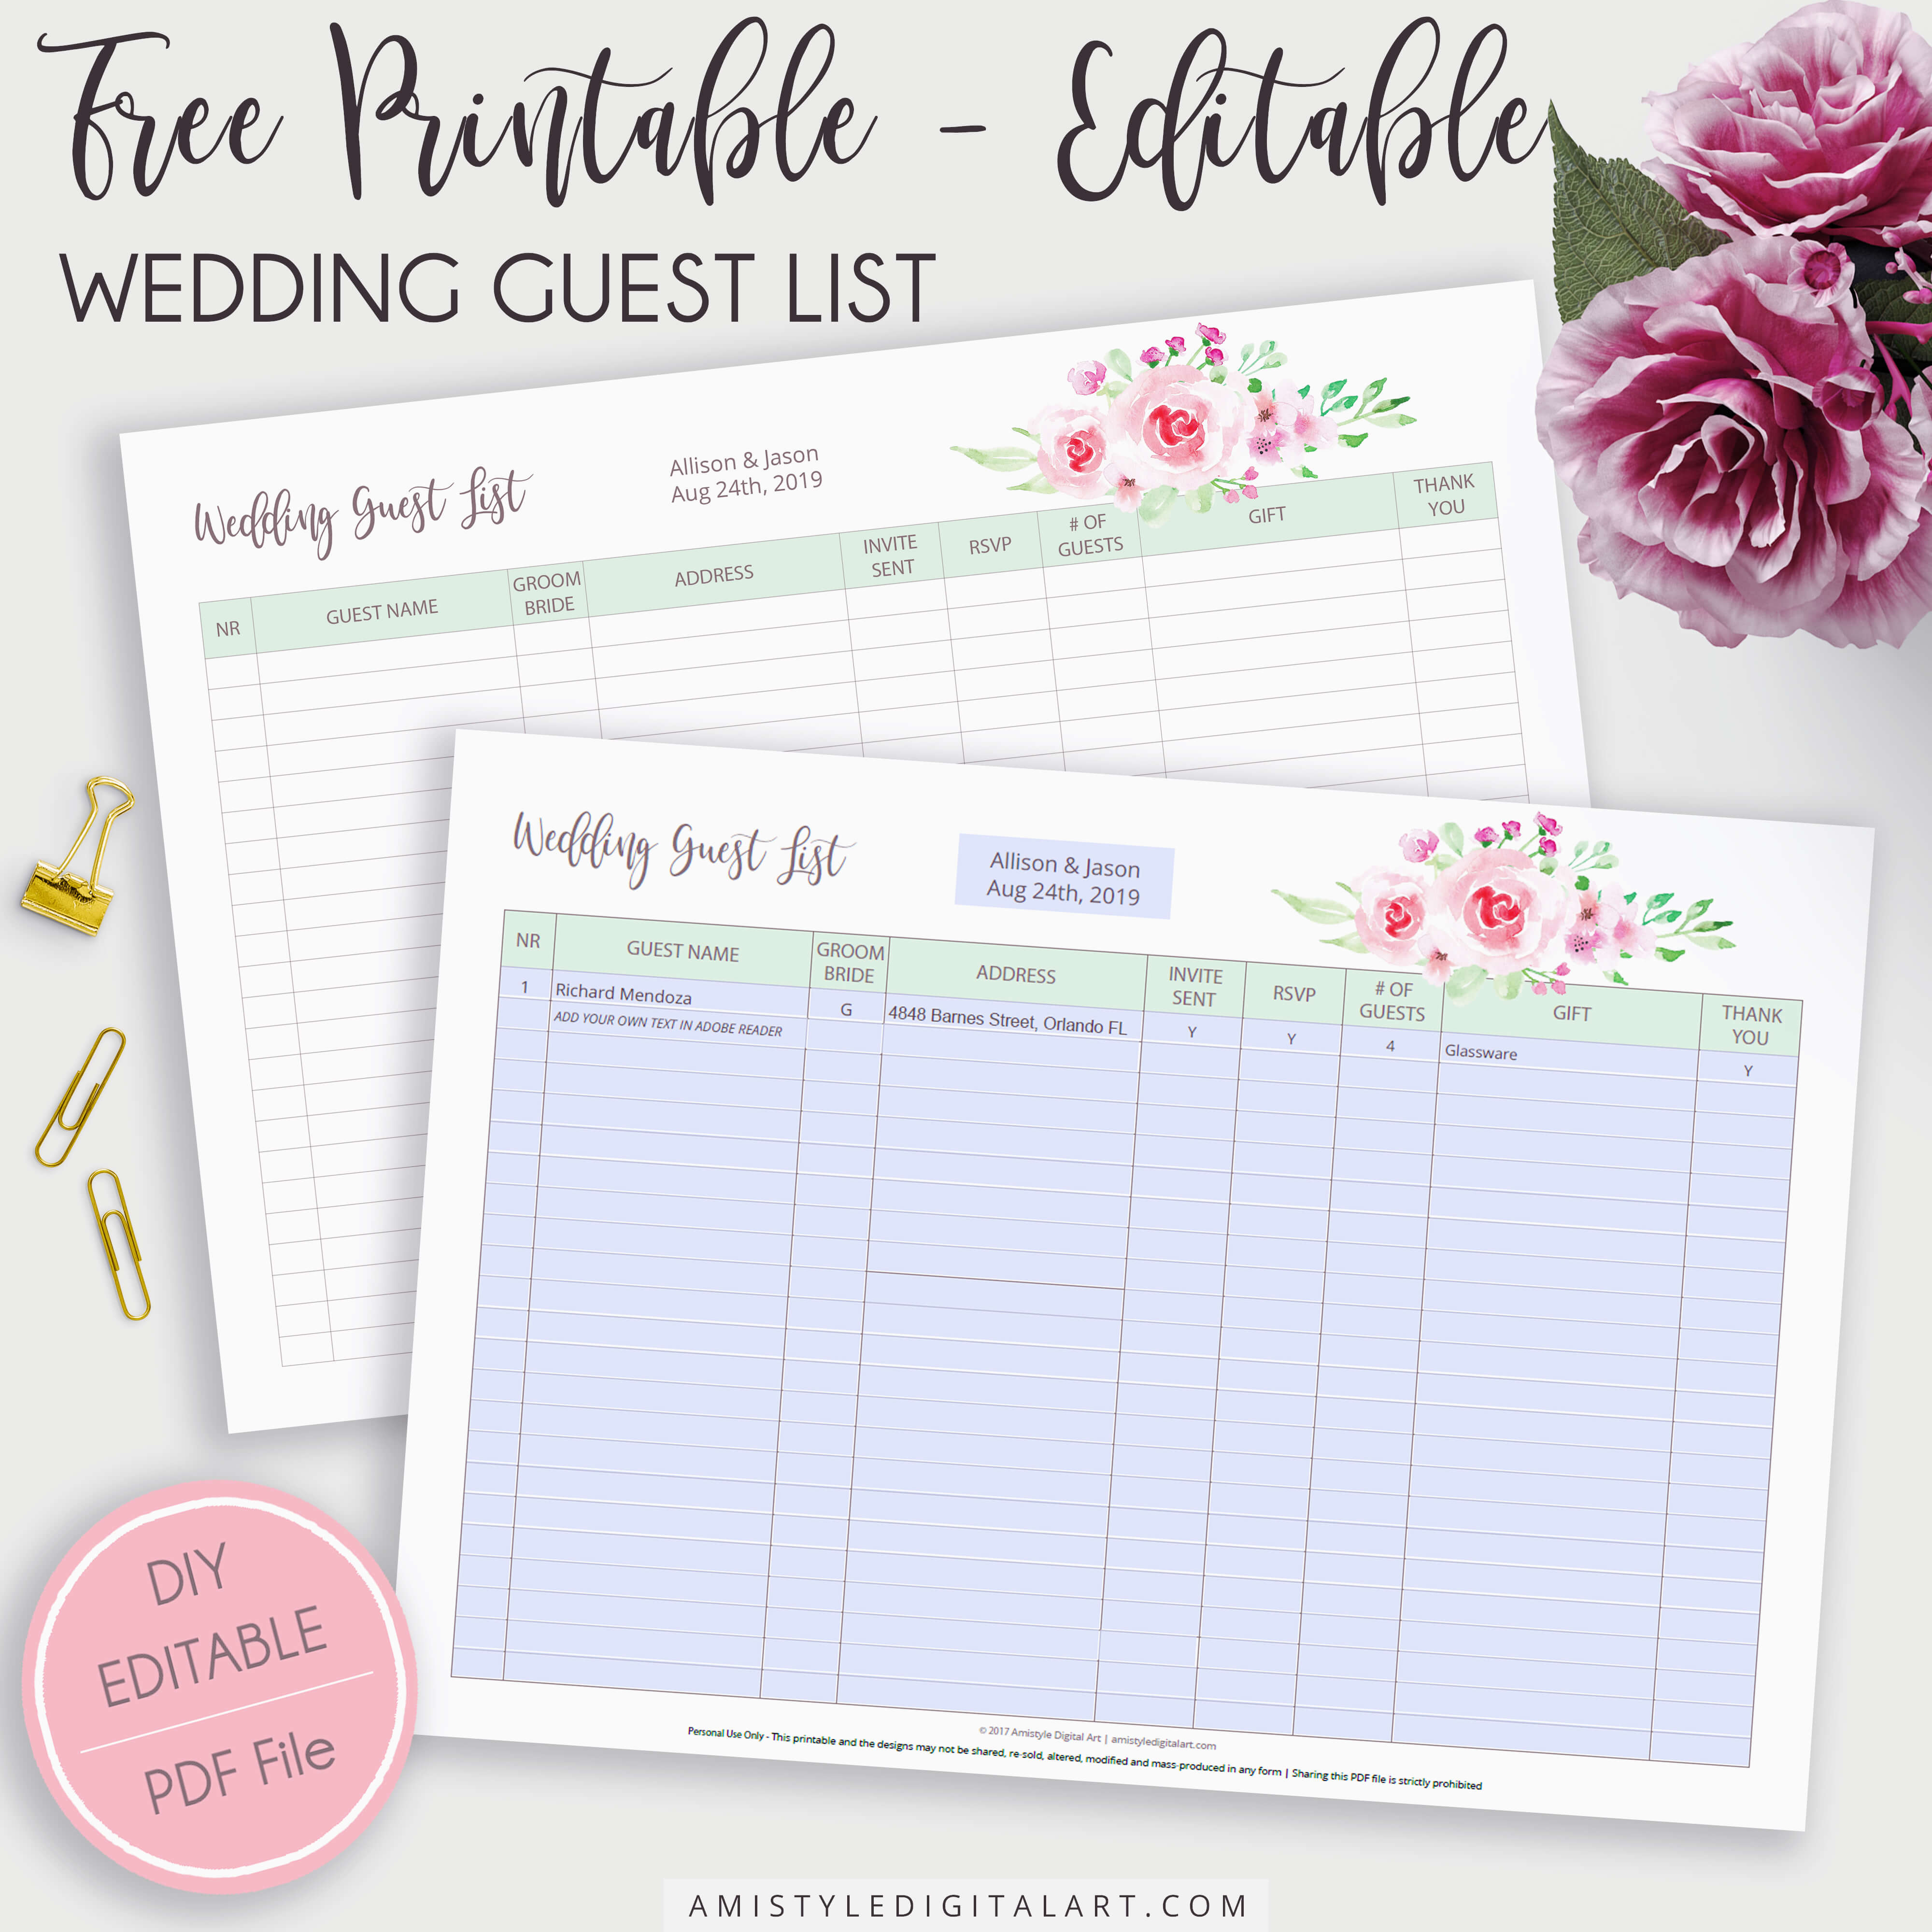 Free Editable Printable Wedding Guest List | Amistyle Digital Art